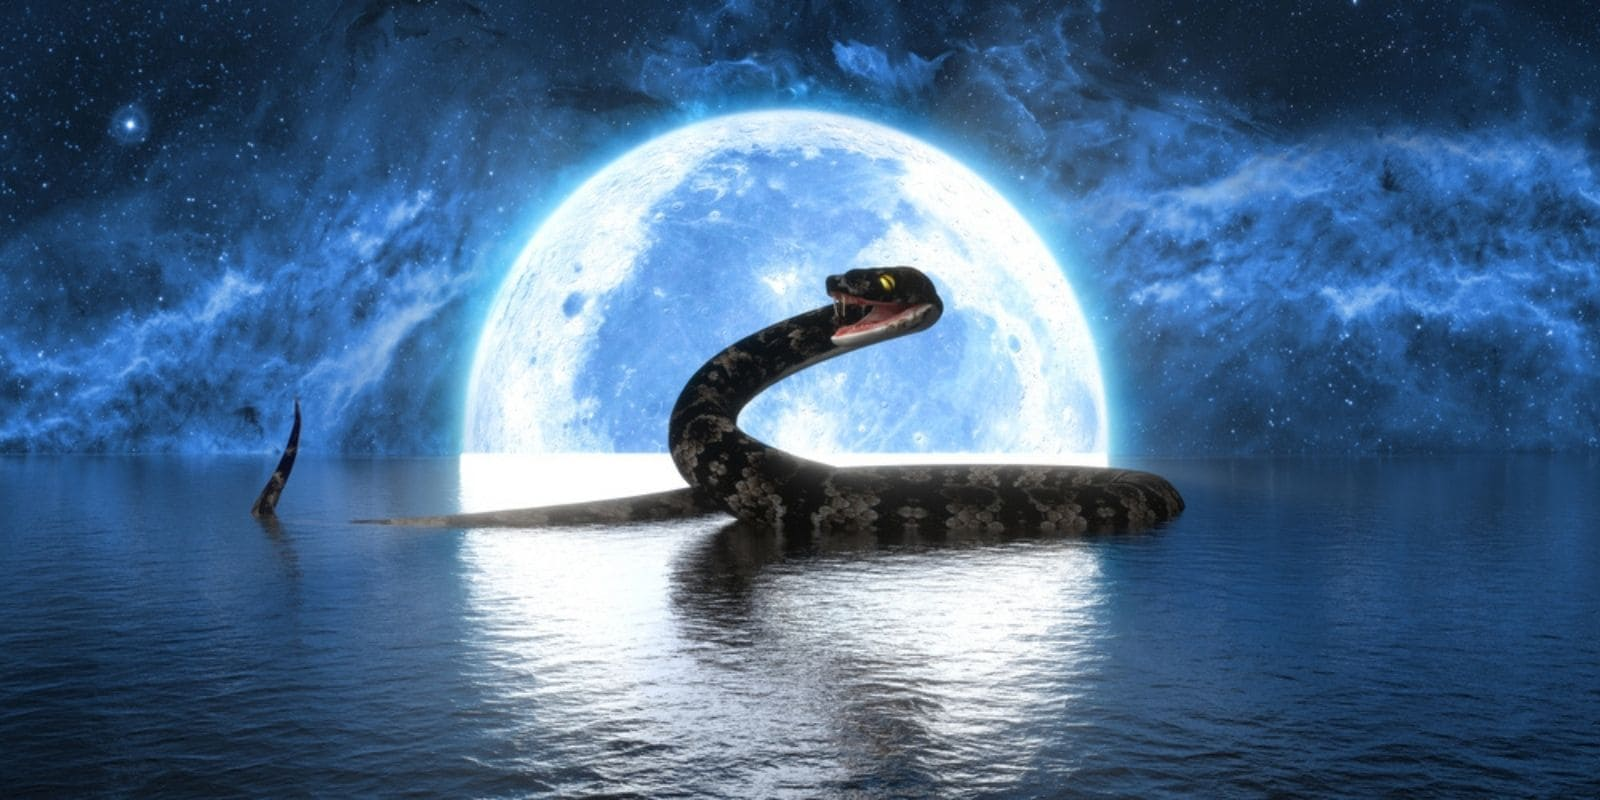 Huge snake in the ocean with the moon behind. Snake Dream